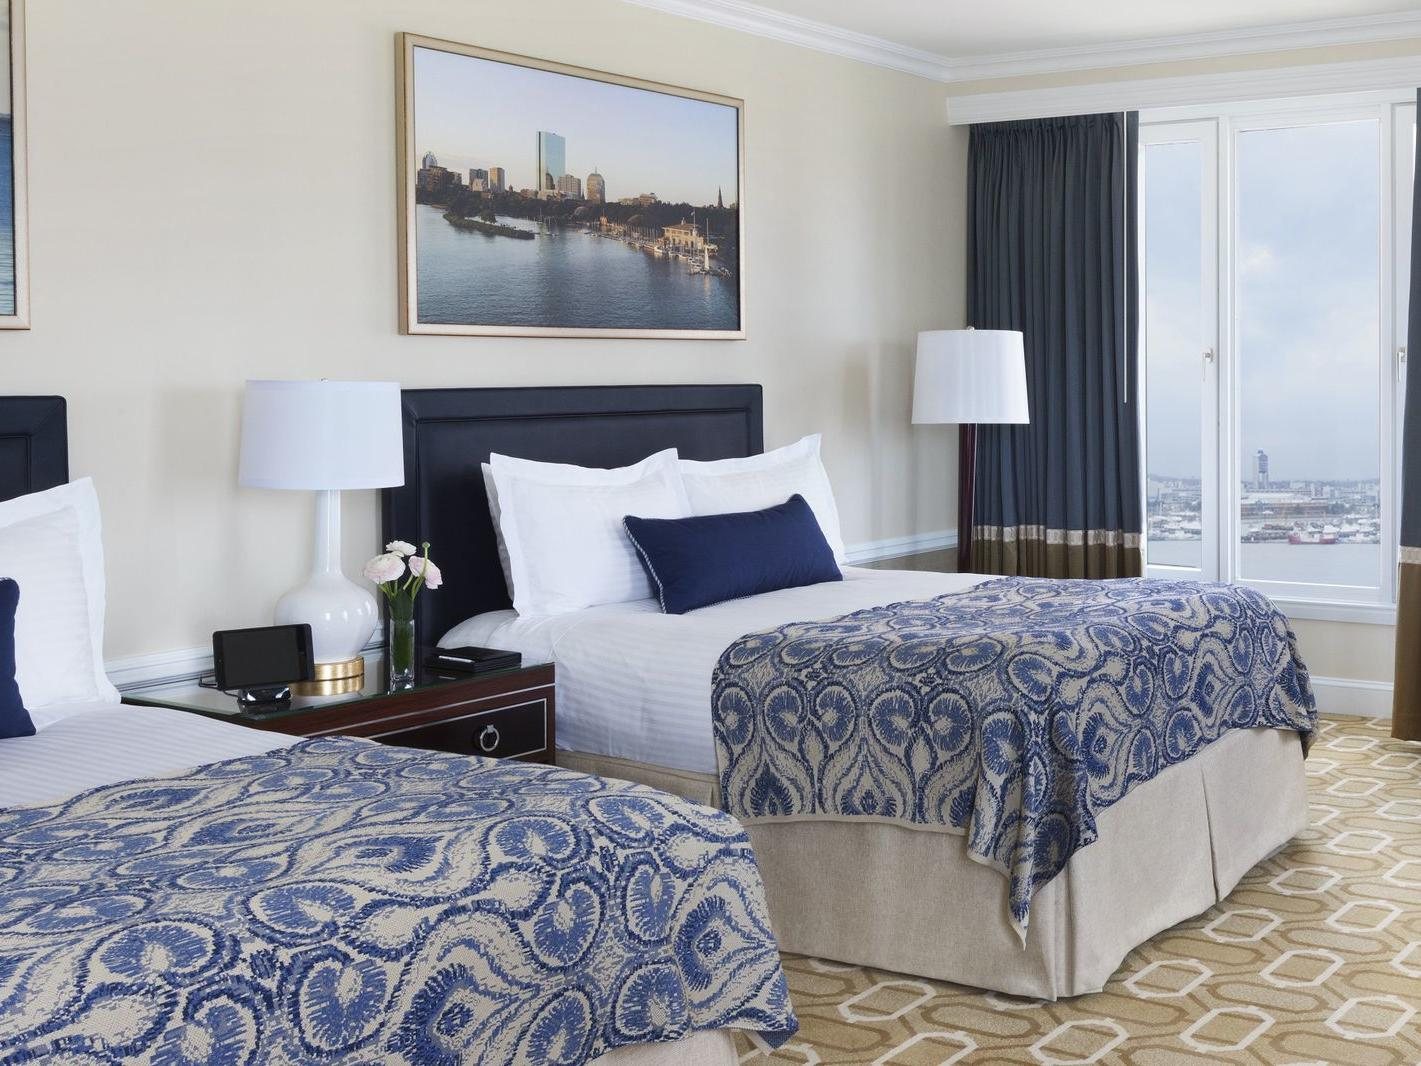 Two guest beds with view of the harbor